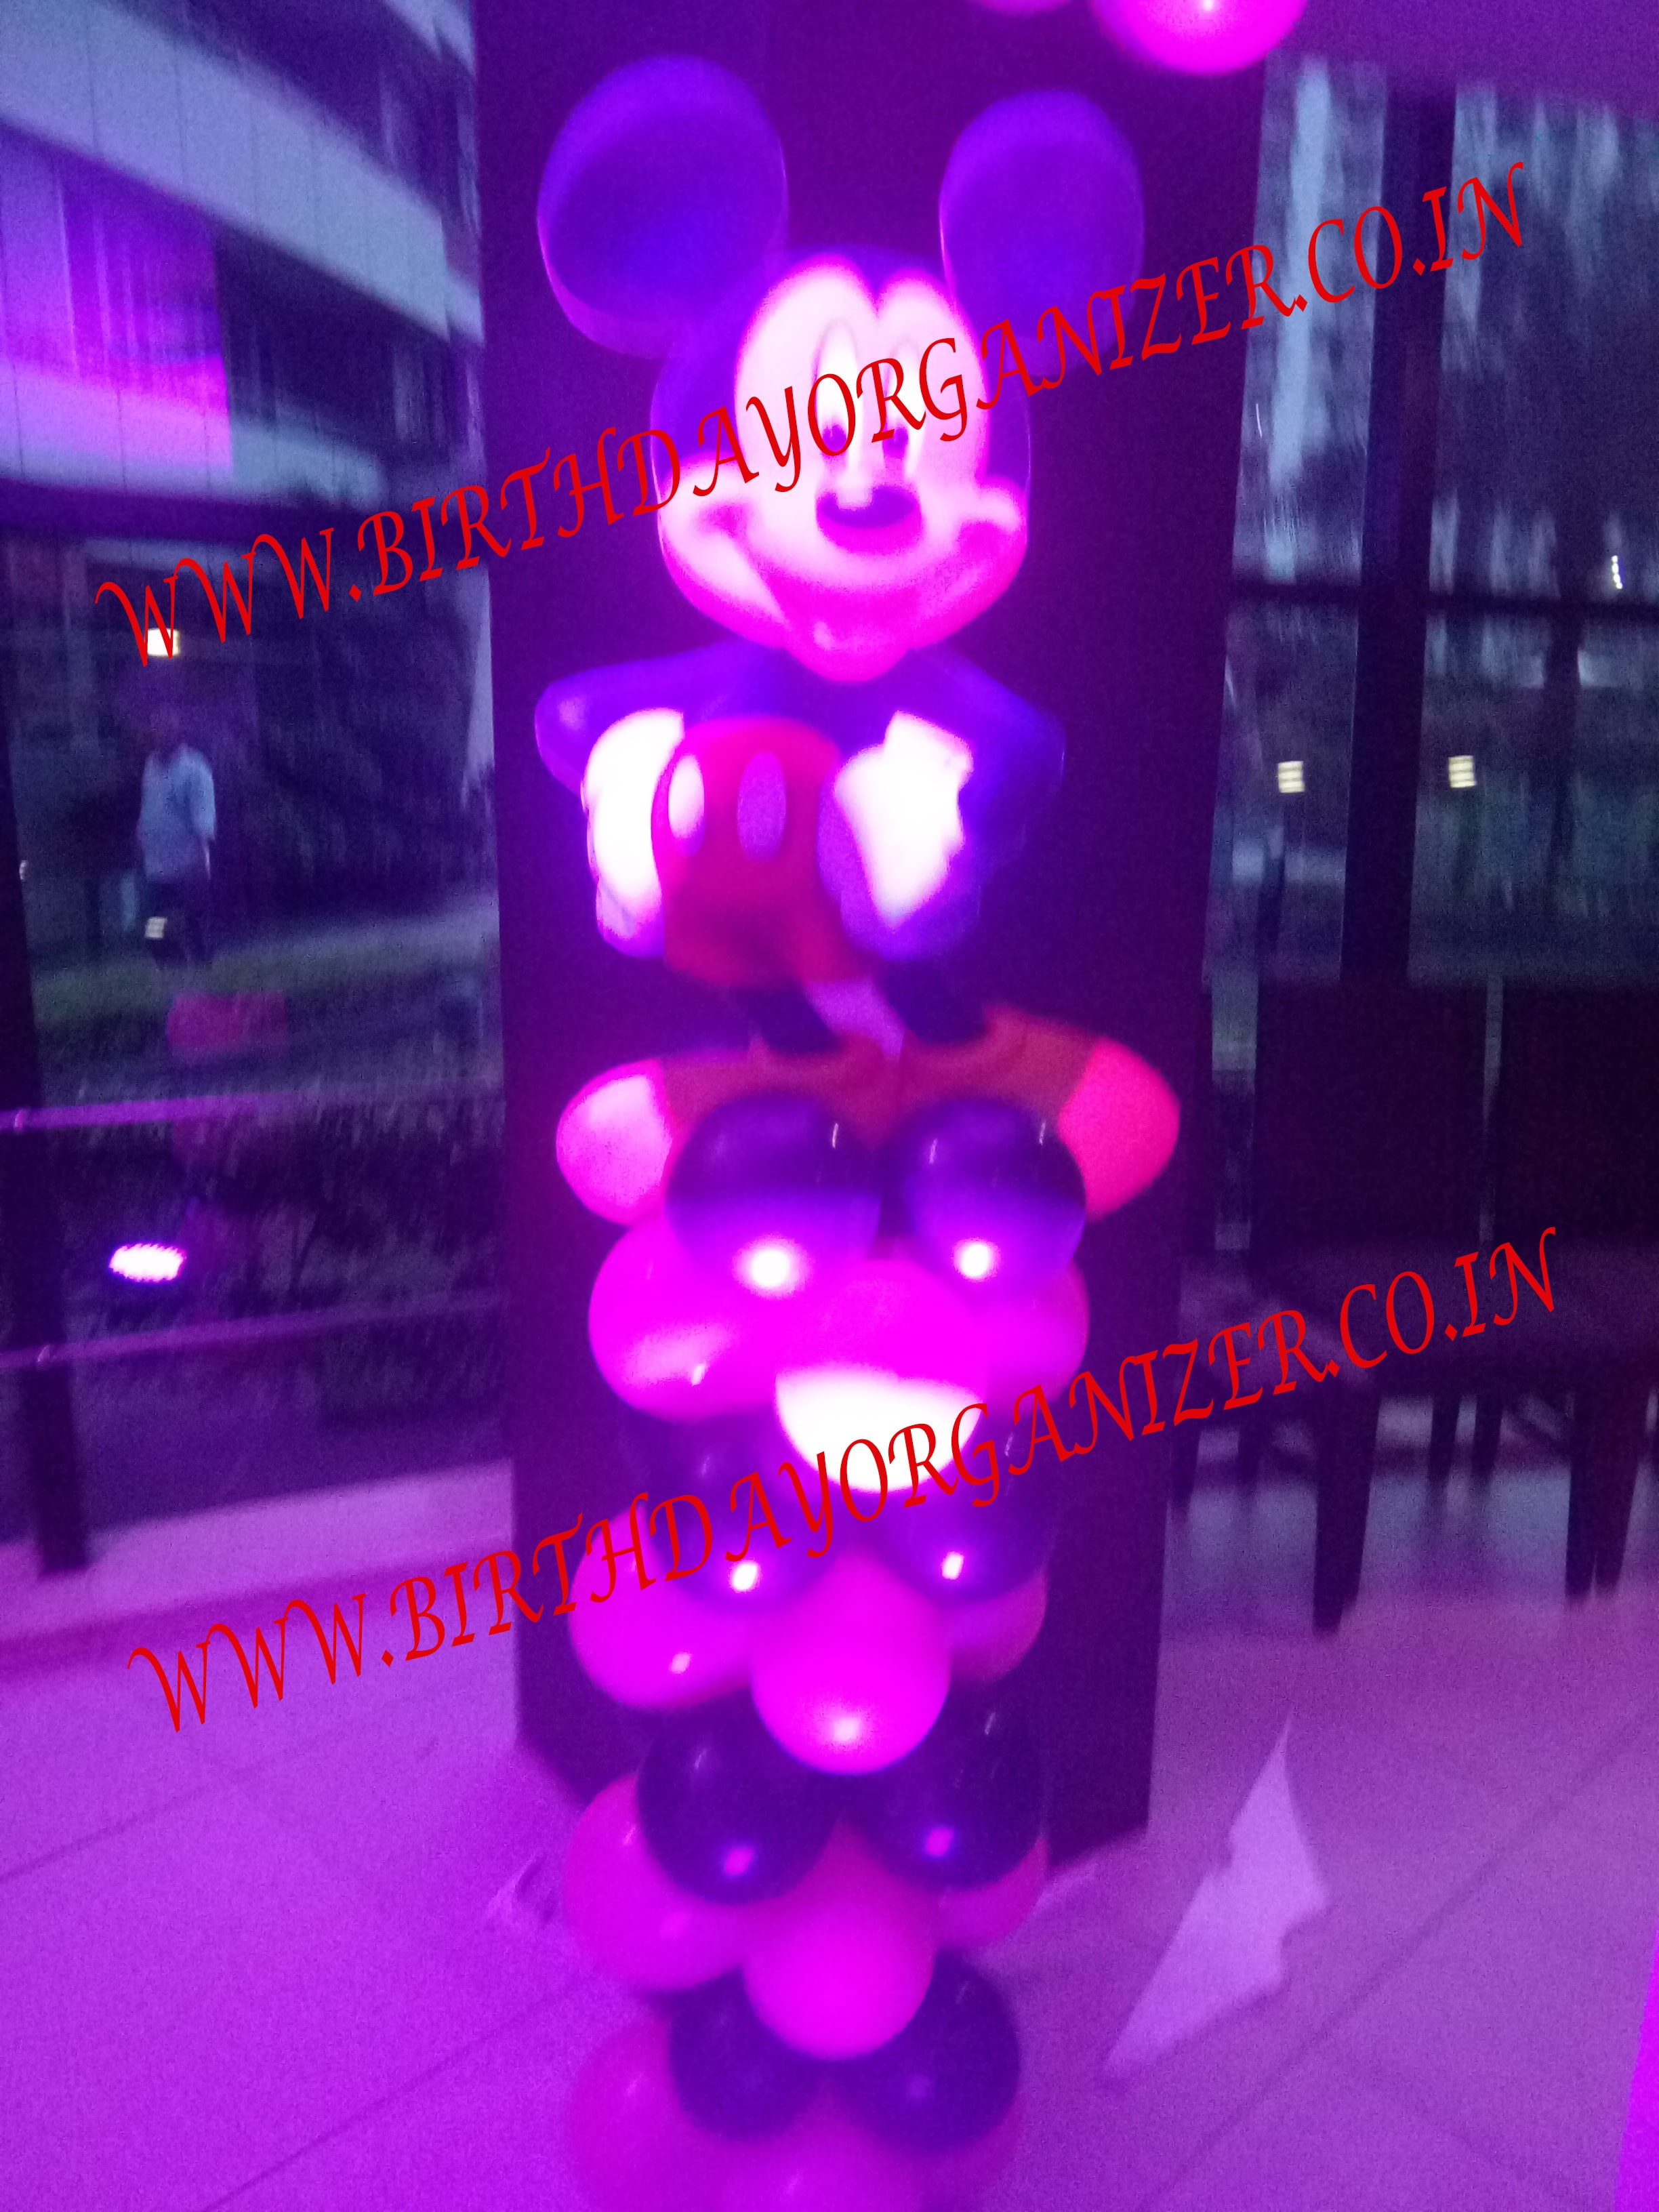 mickey mouse theme party decoration in noida delhi ncr  gurgaon, mickey mouse theme party ideas in noida delhi ncr gurgaon, mickey mouse theme party planner in noida delhi ncr gurgaon